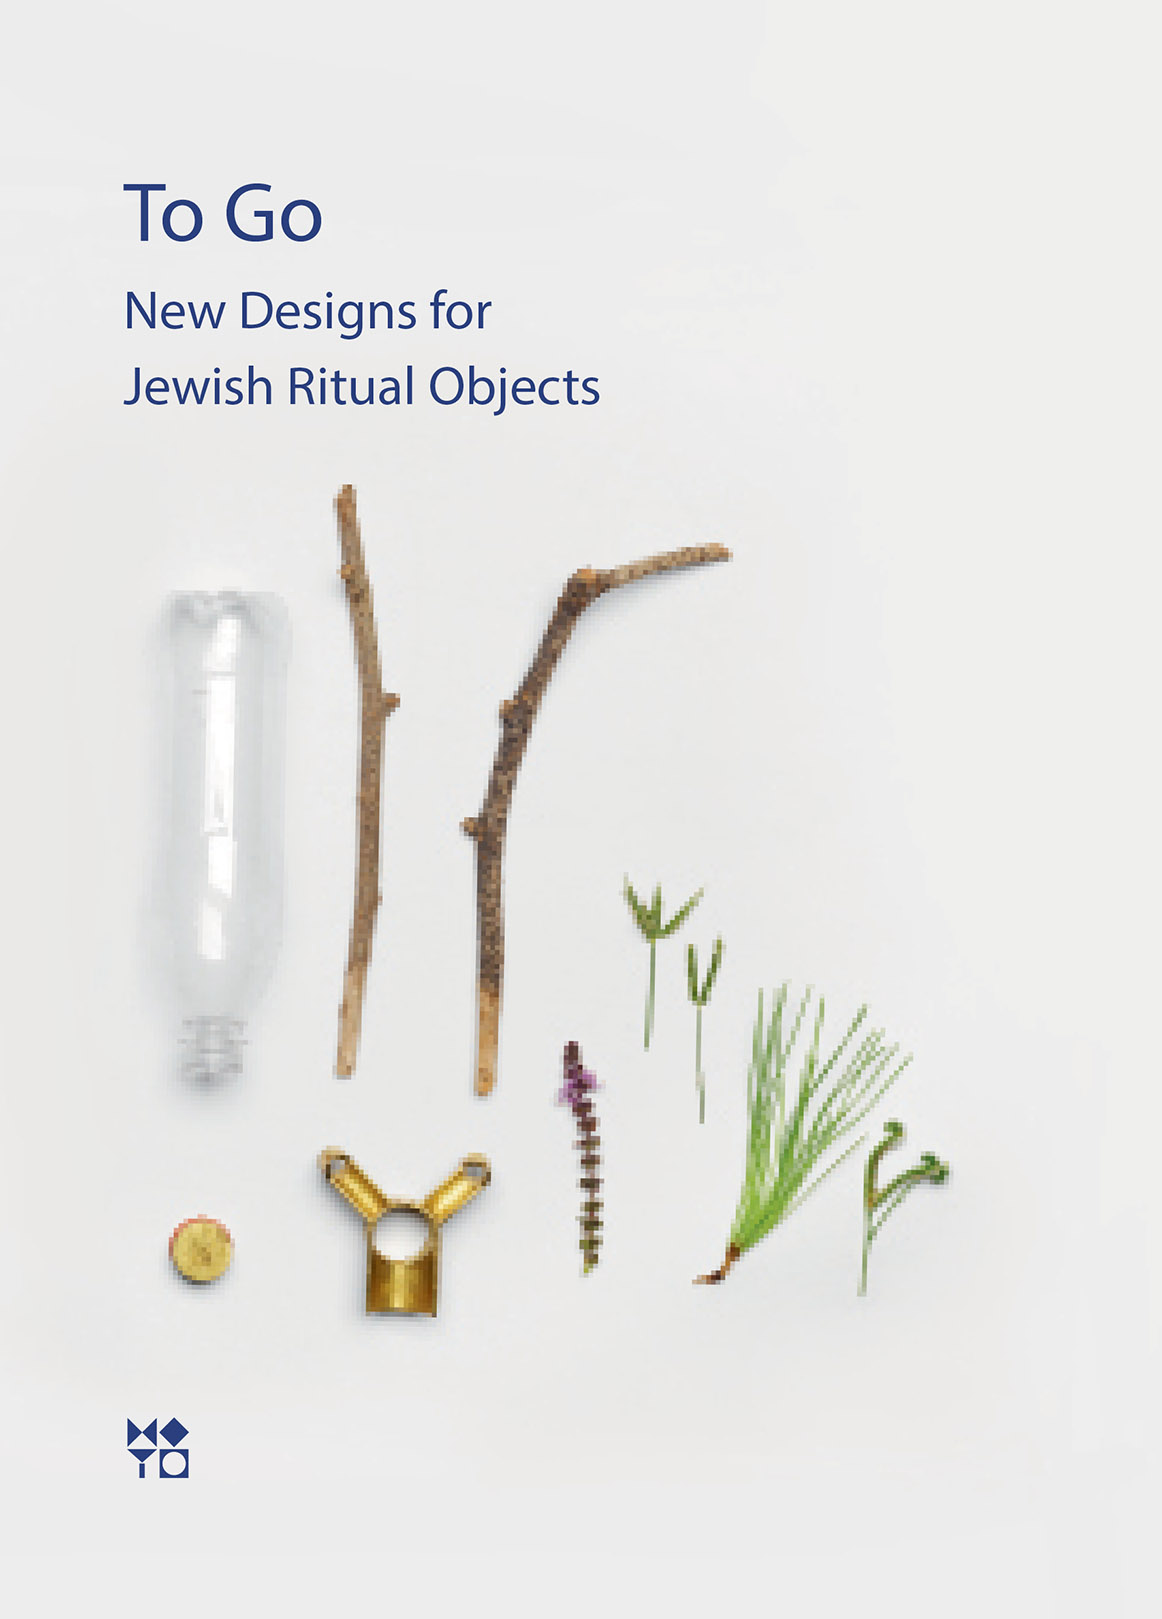 TO GO: New Designs For Jewish Ritual Objects